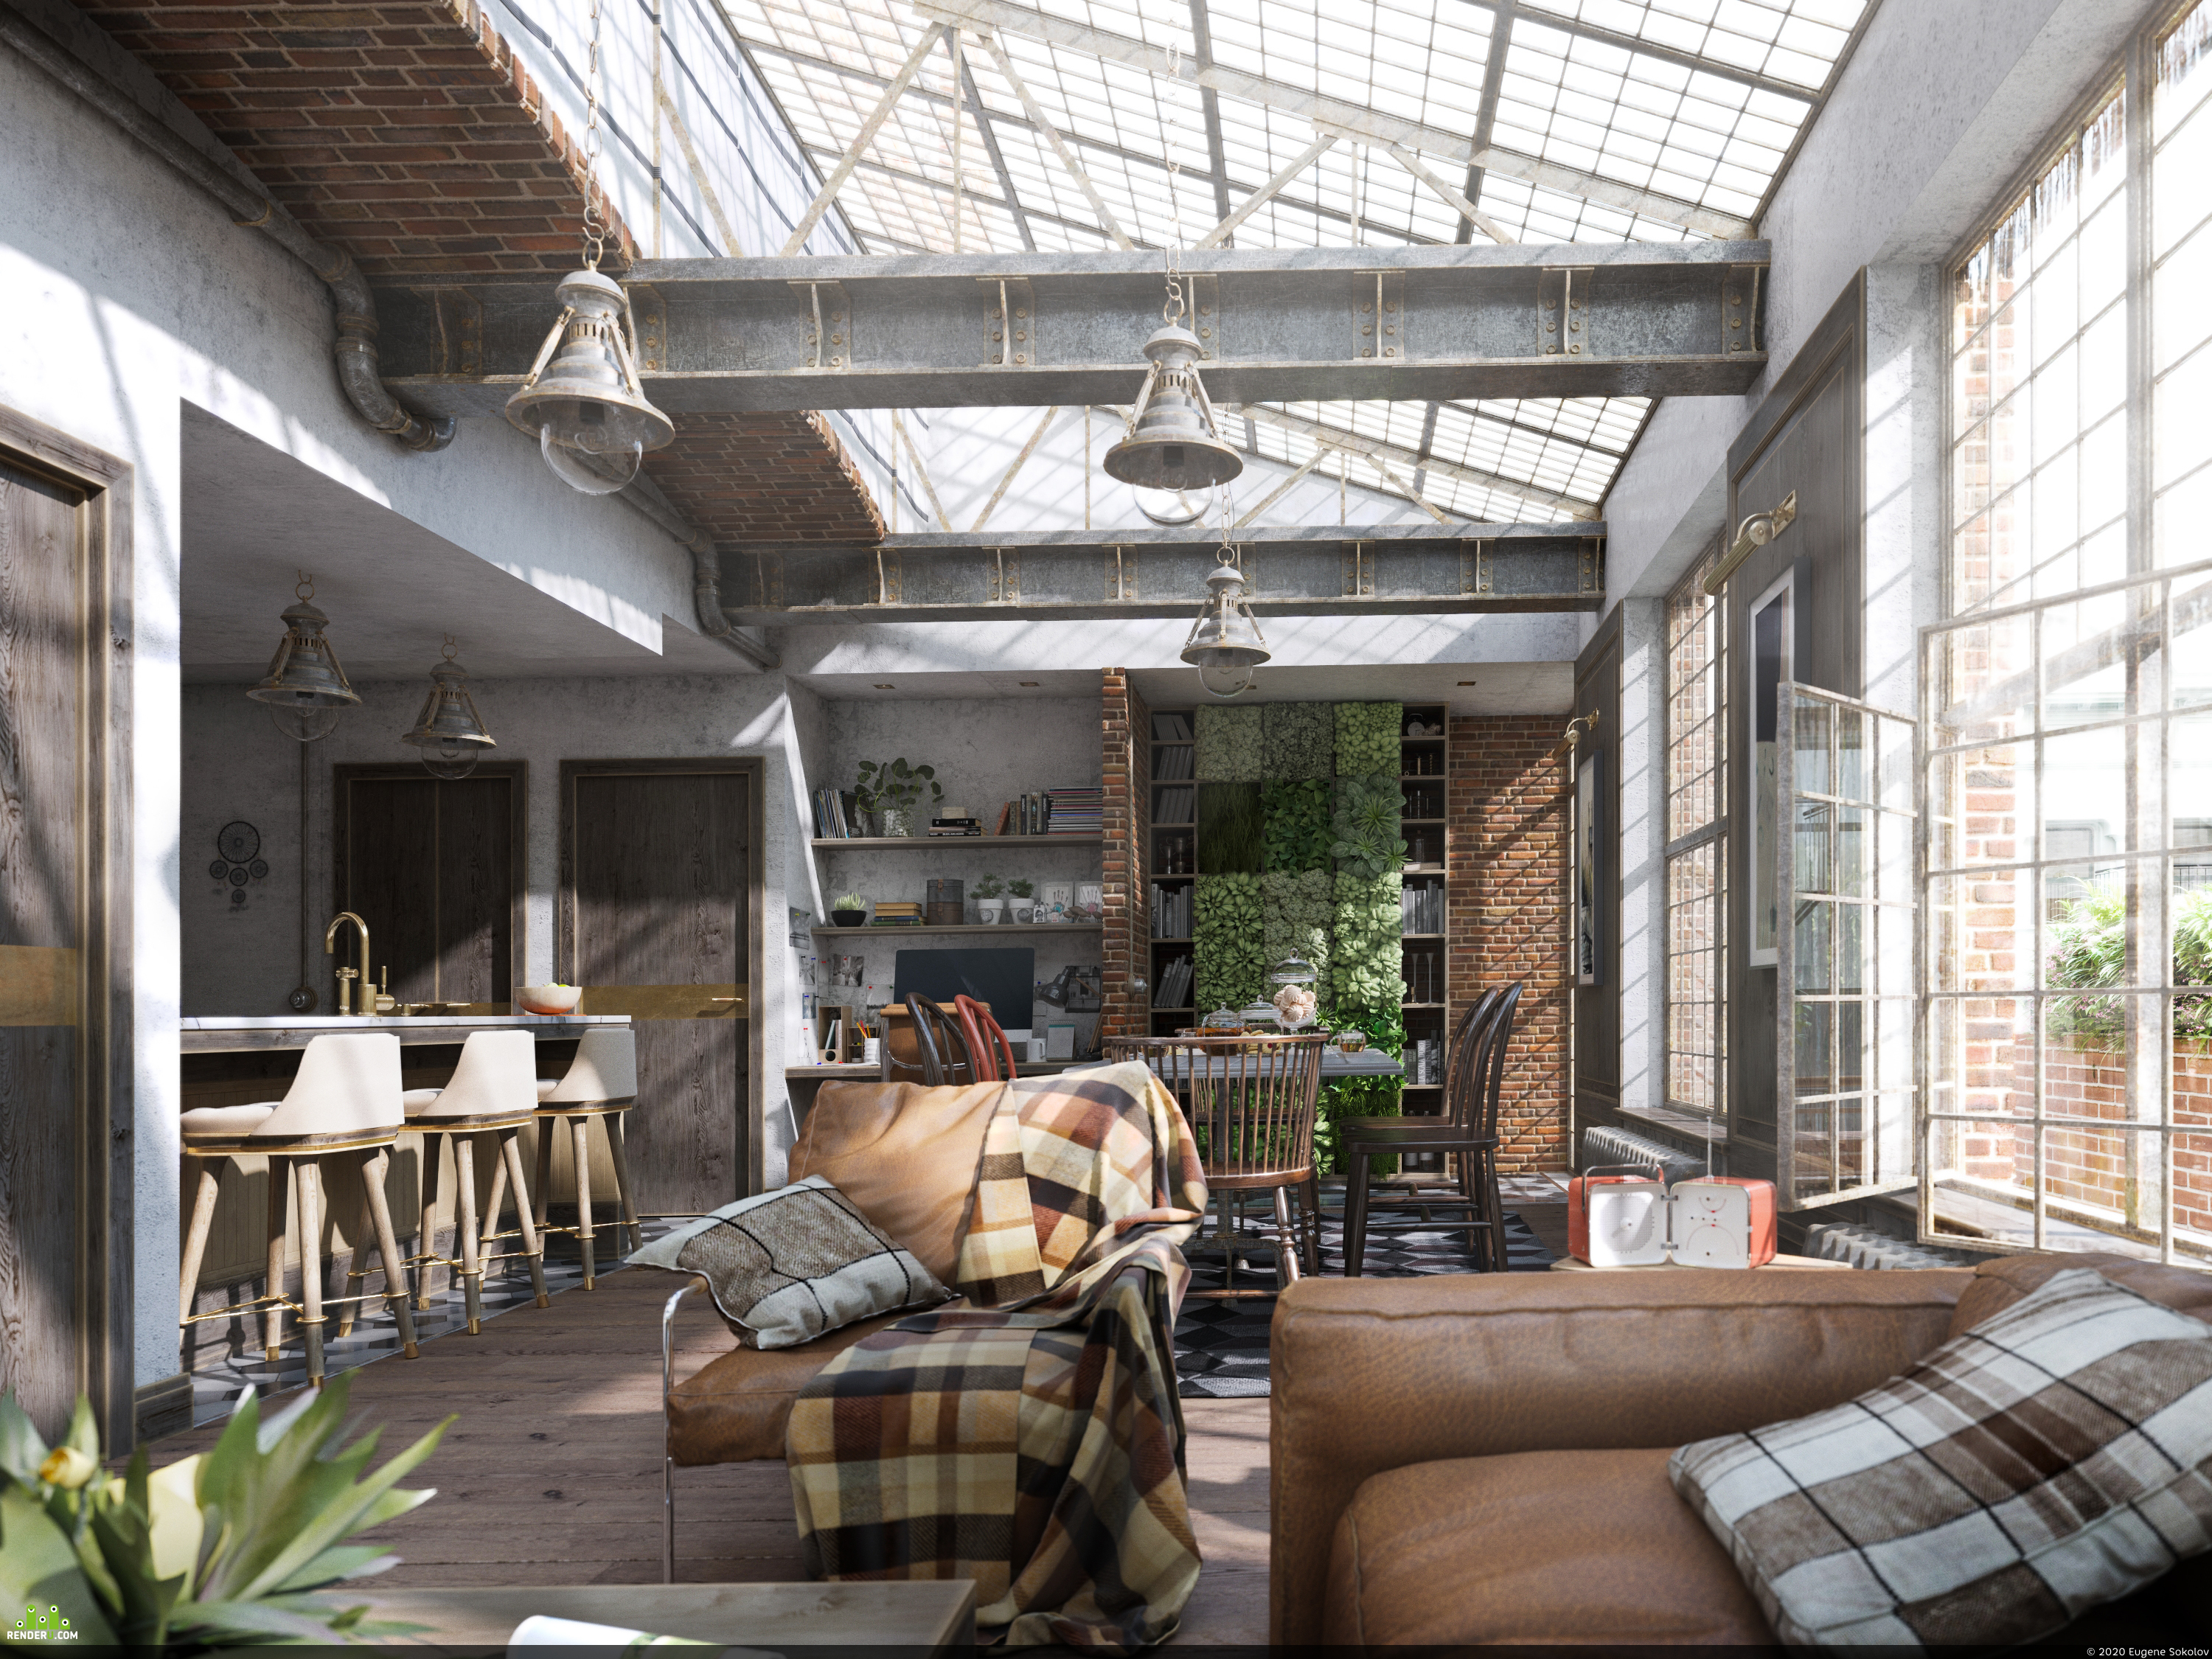 preview Квартира в бывшем здании склада. Apartment in a former warehouse building.